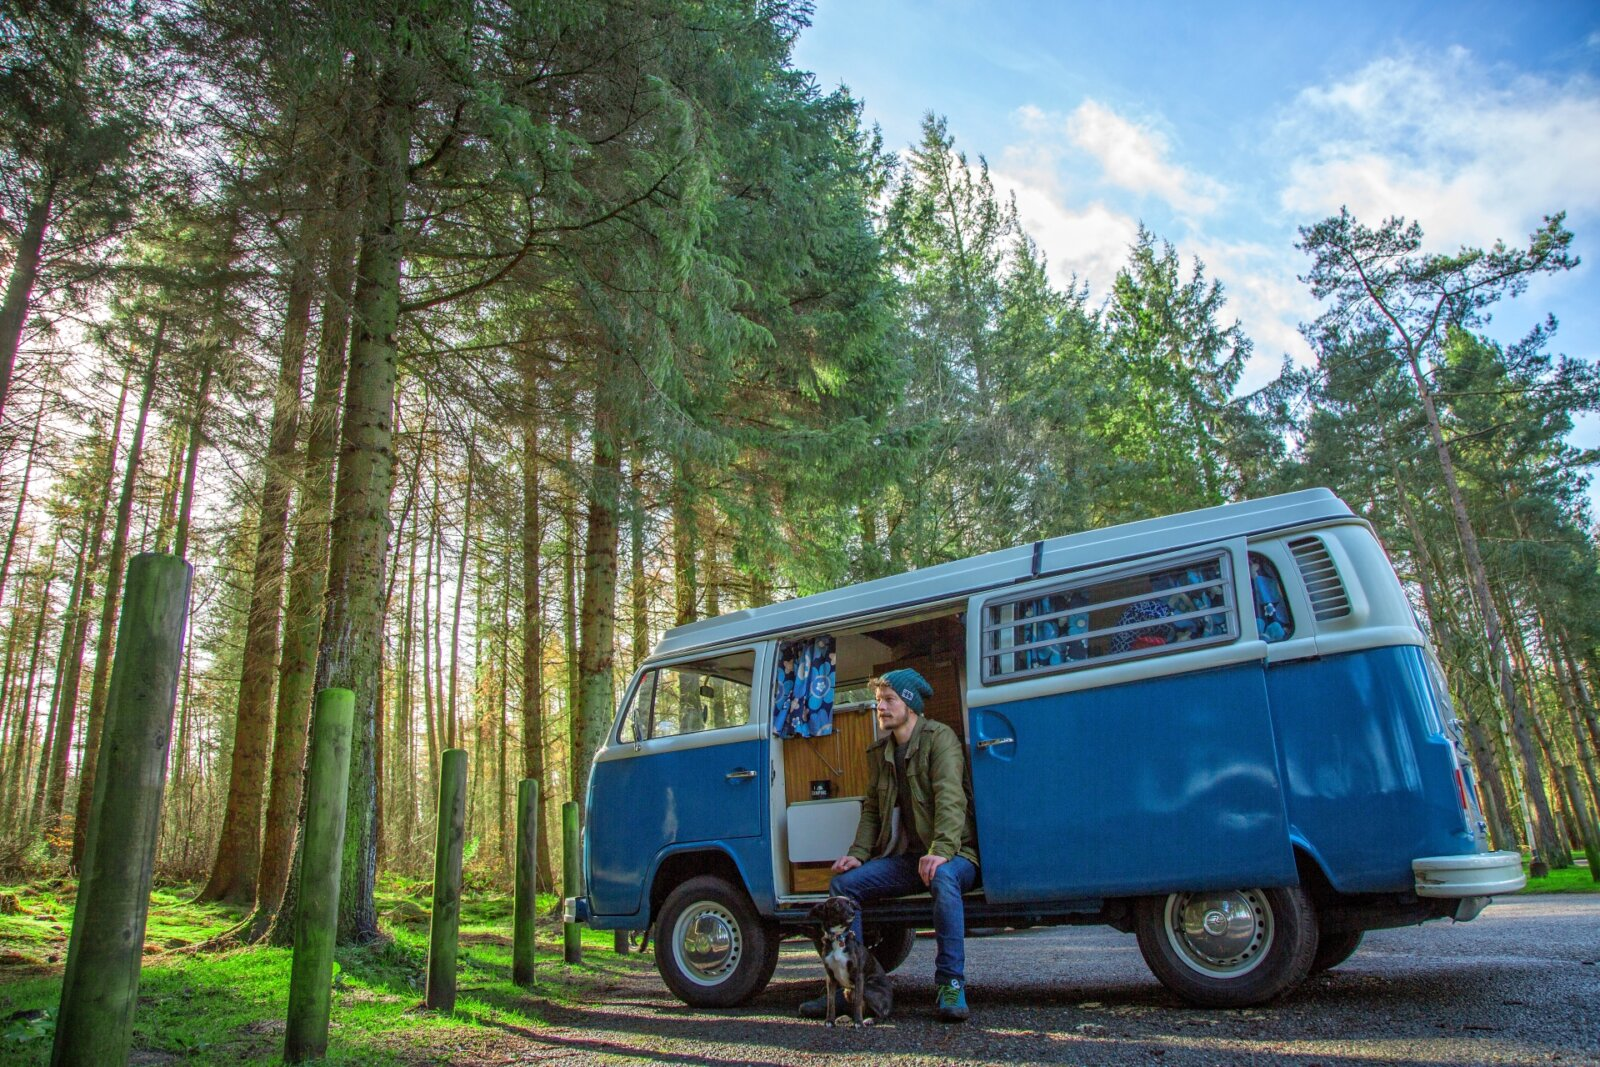 All of the campsites reopening to the public in England this July, The Manc